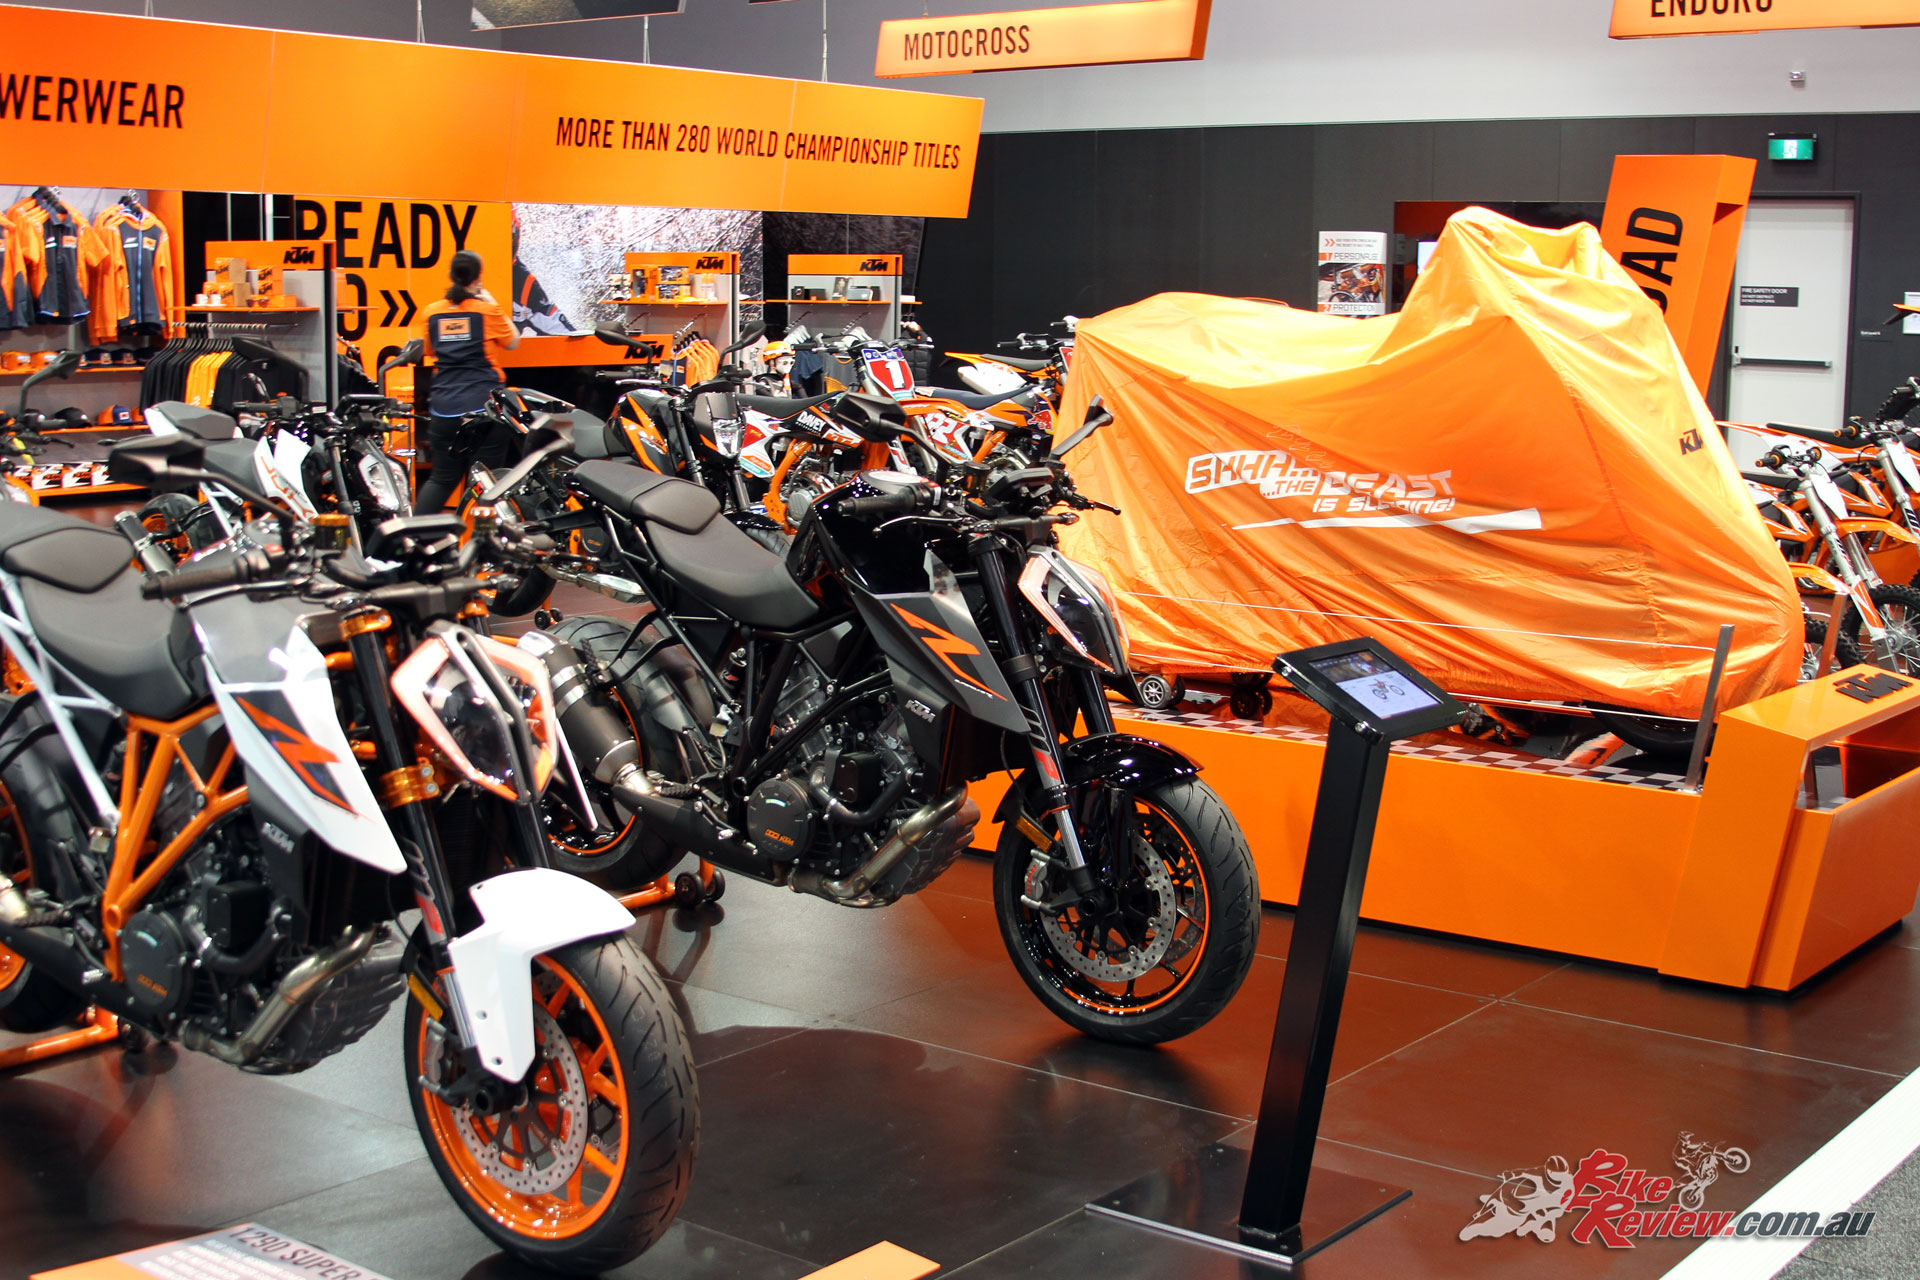 The big reveal at the KTM stand was the 790 Duke